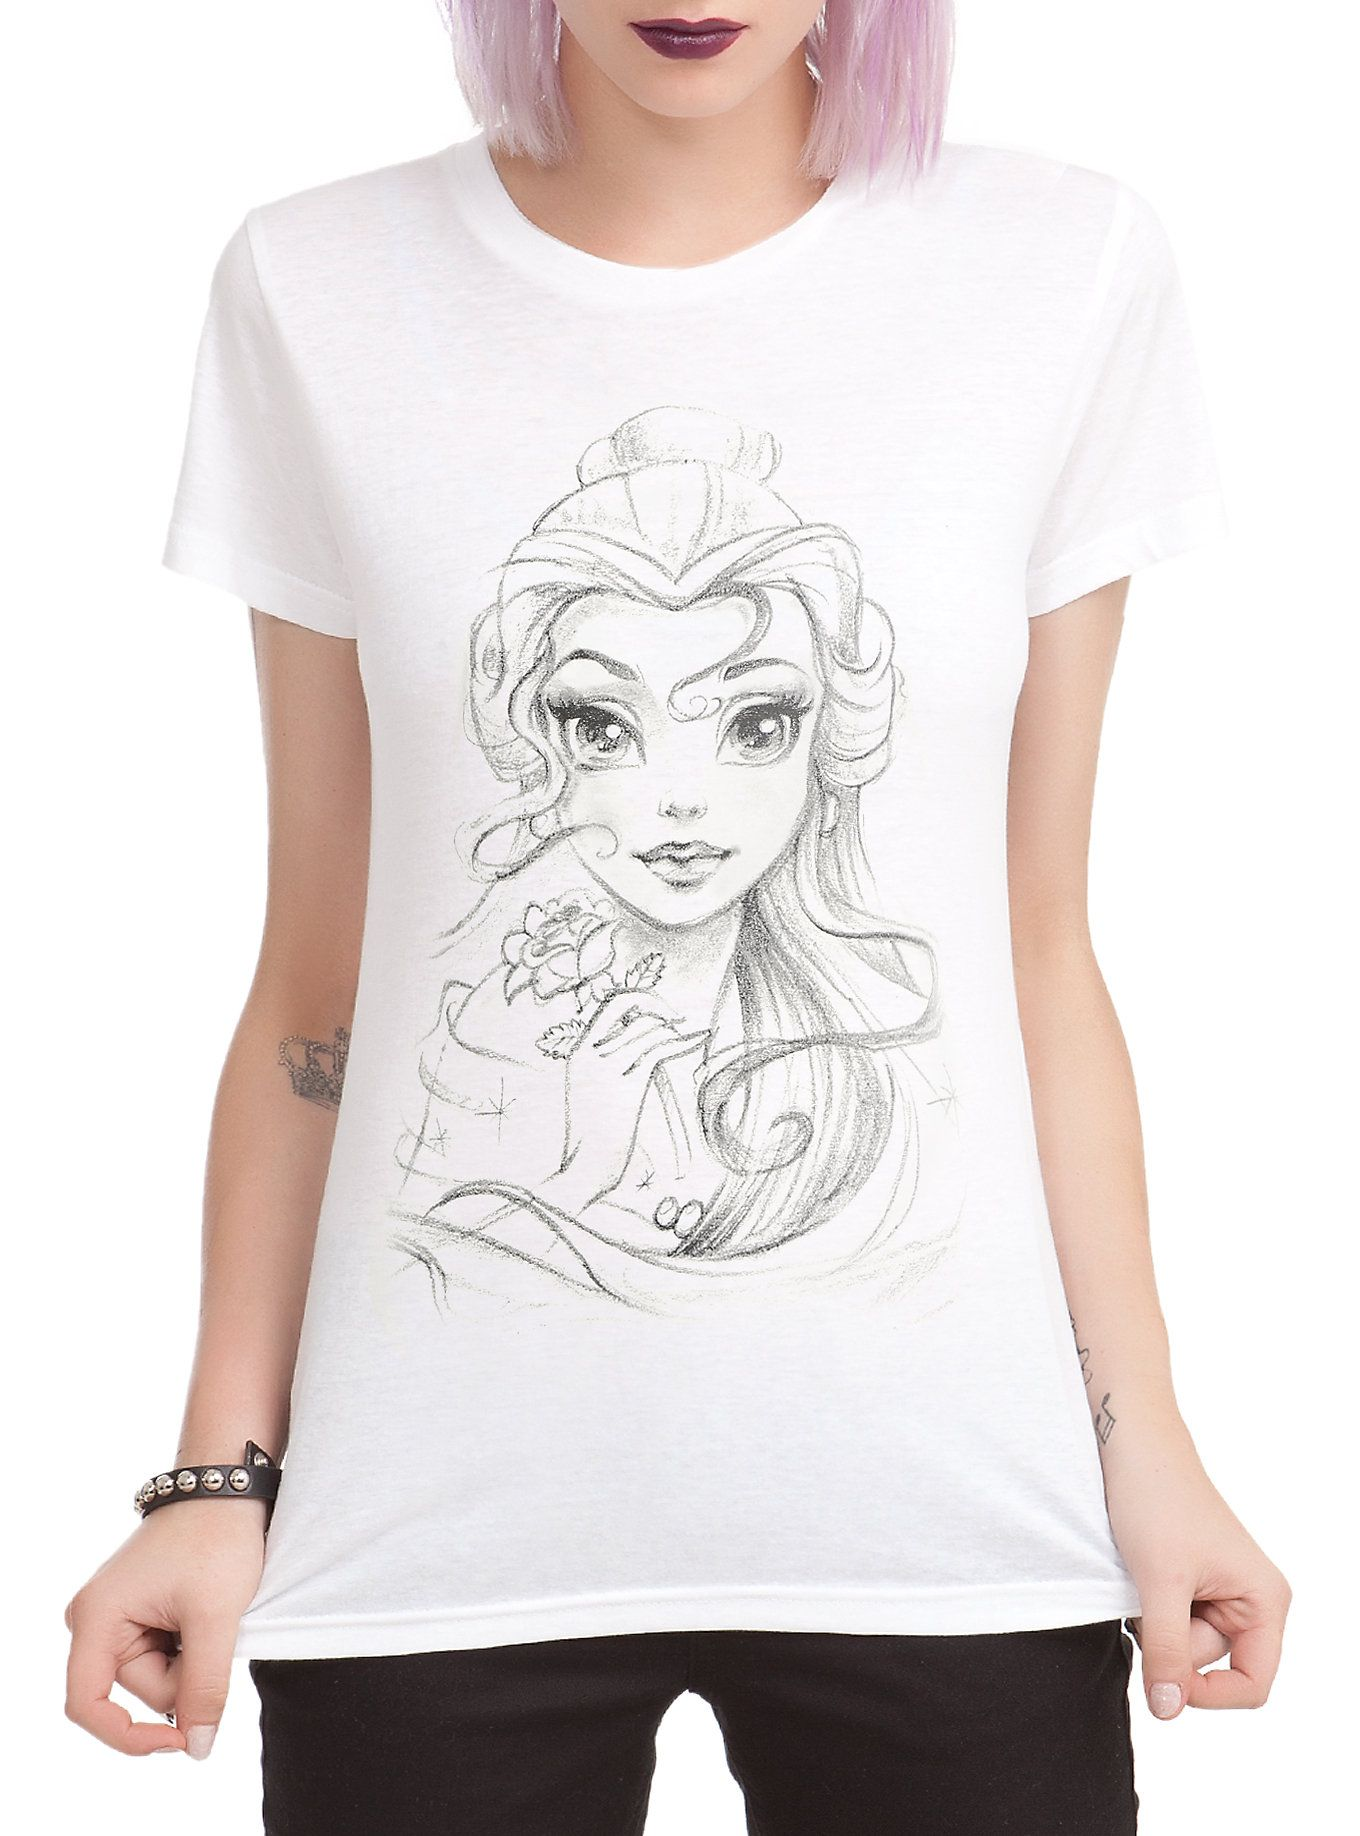 03b001ee4 Disney Beauty And The Beast Belle Sketch Girls T-Shirt | My Style ...